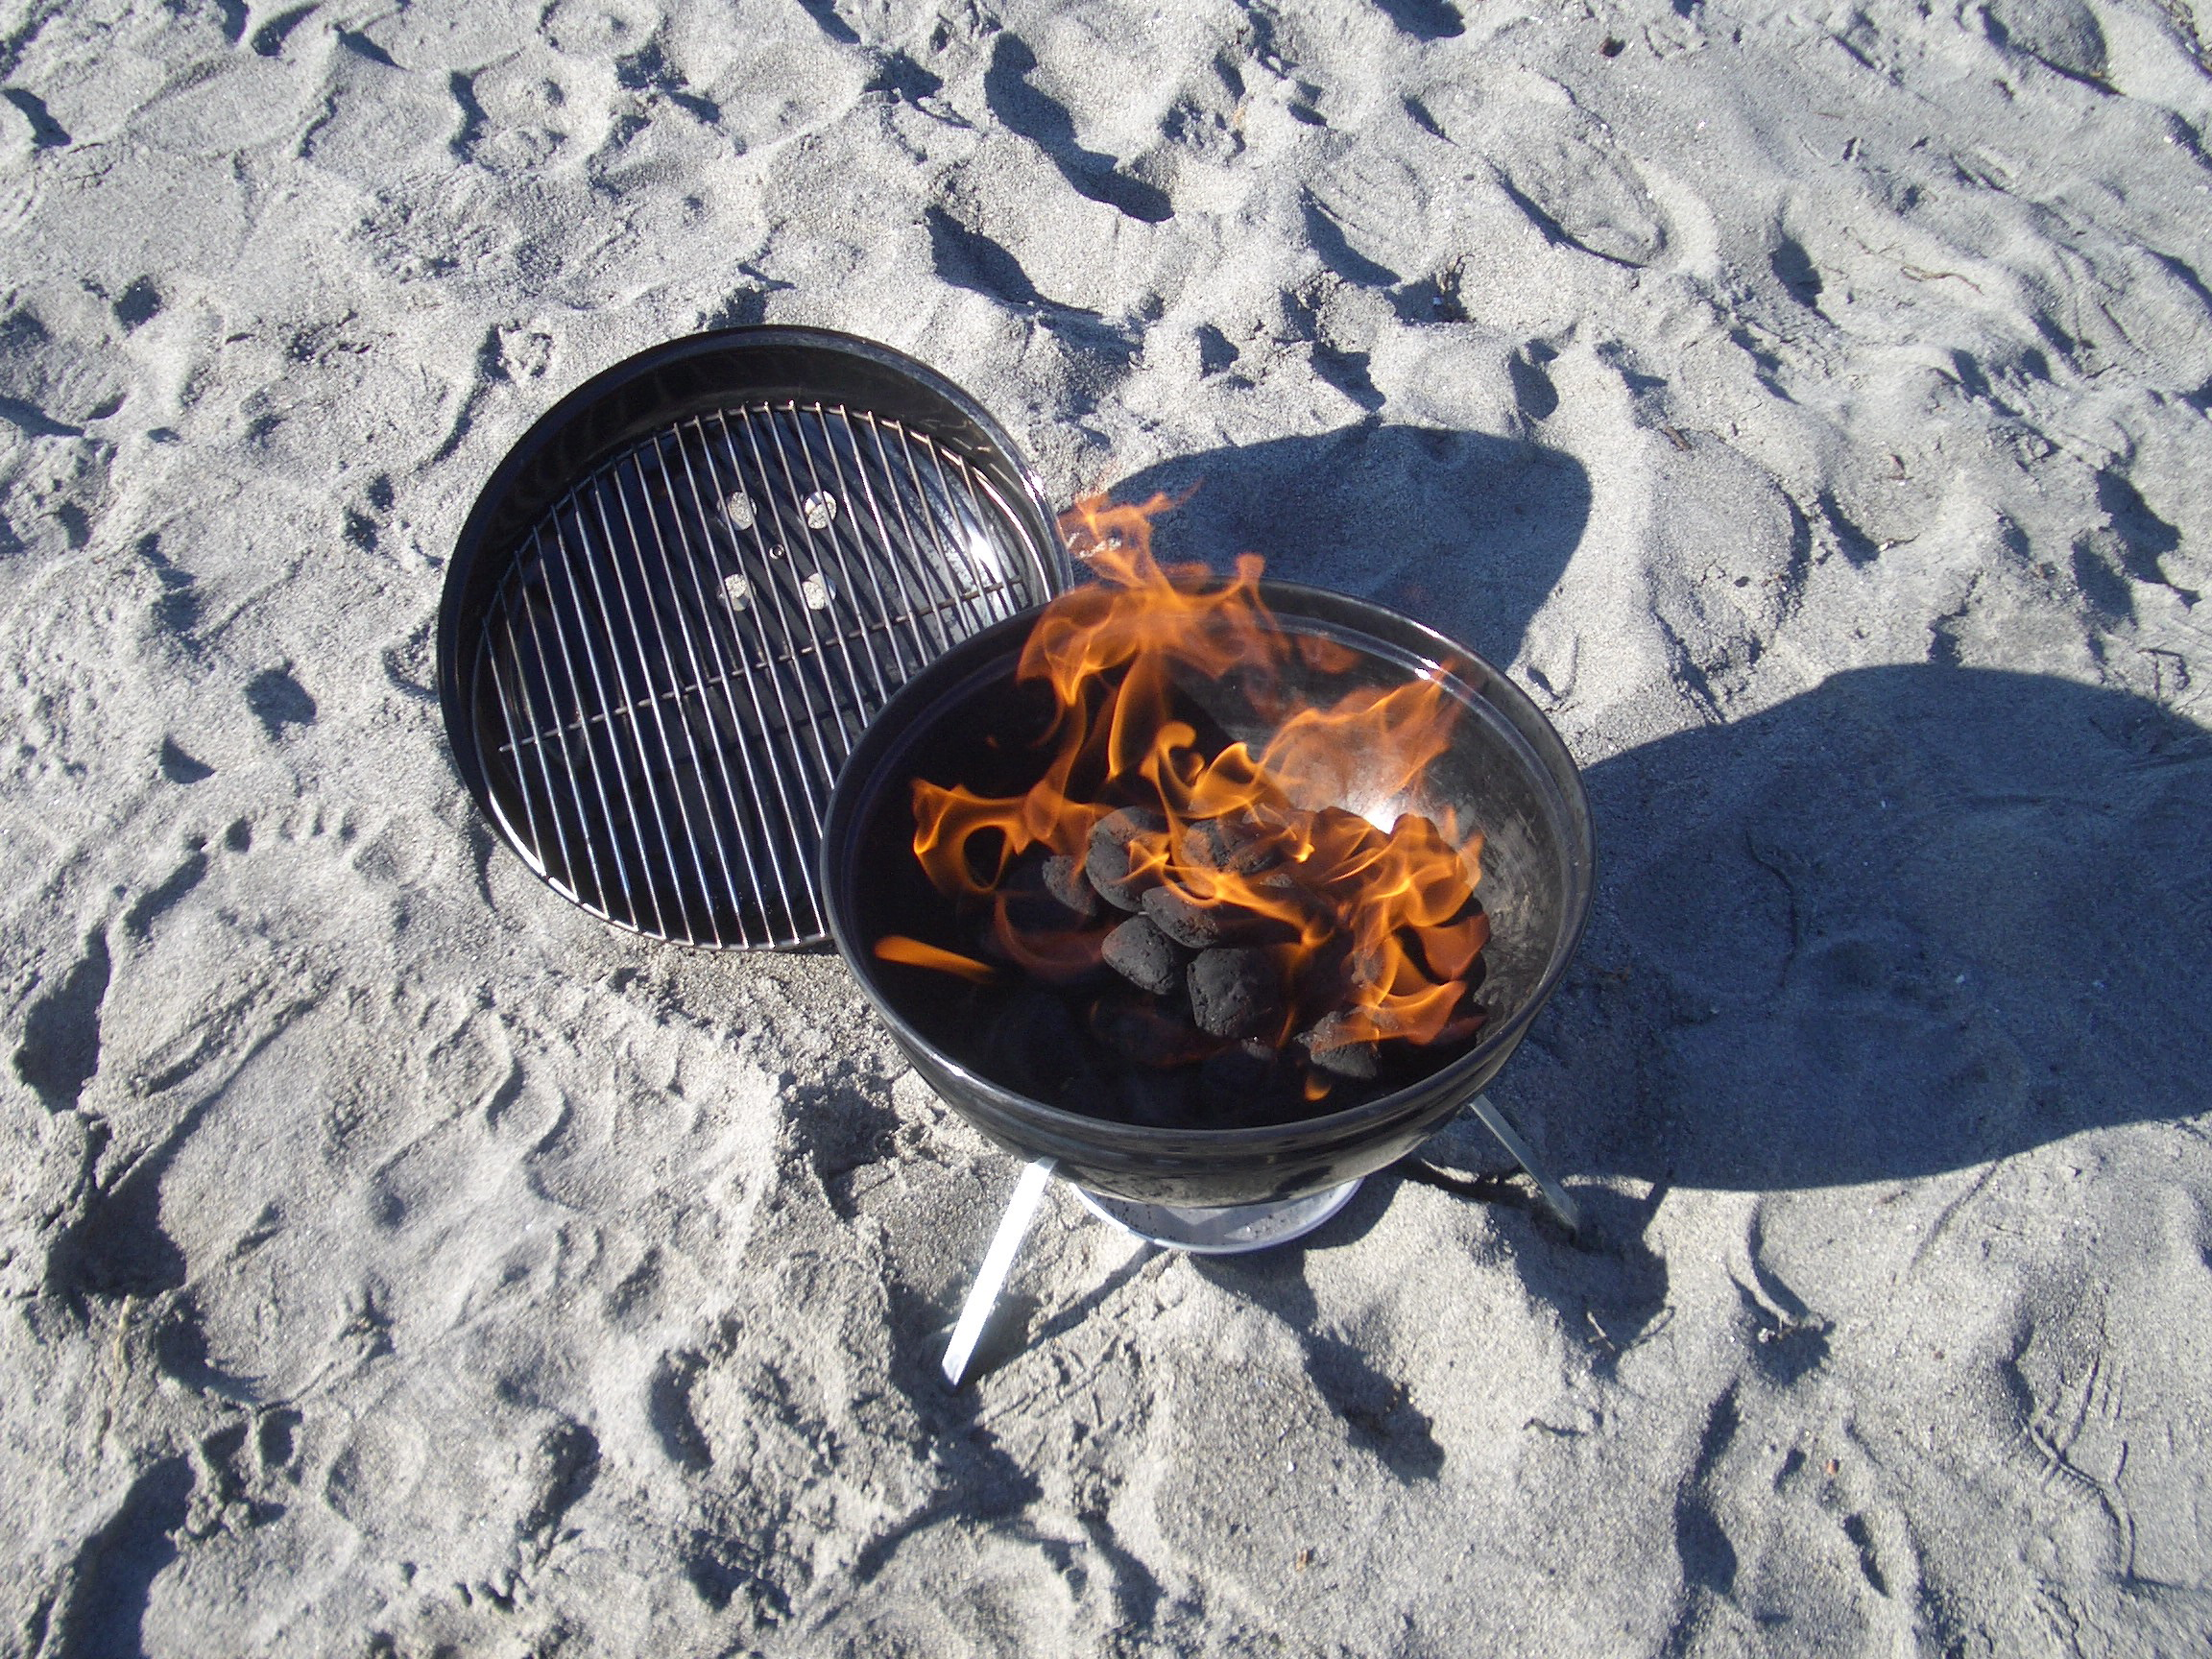 Grilling_on_the_Beach_in_February